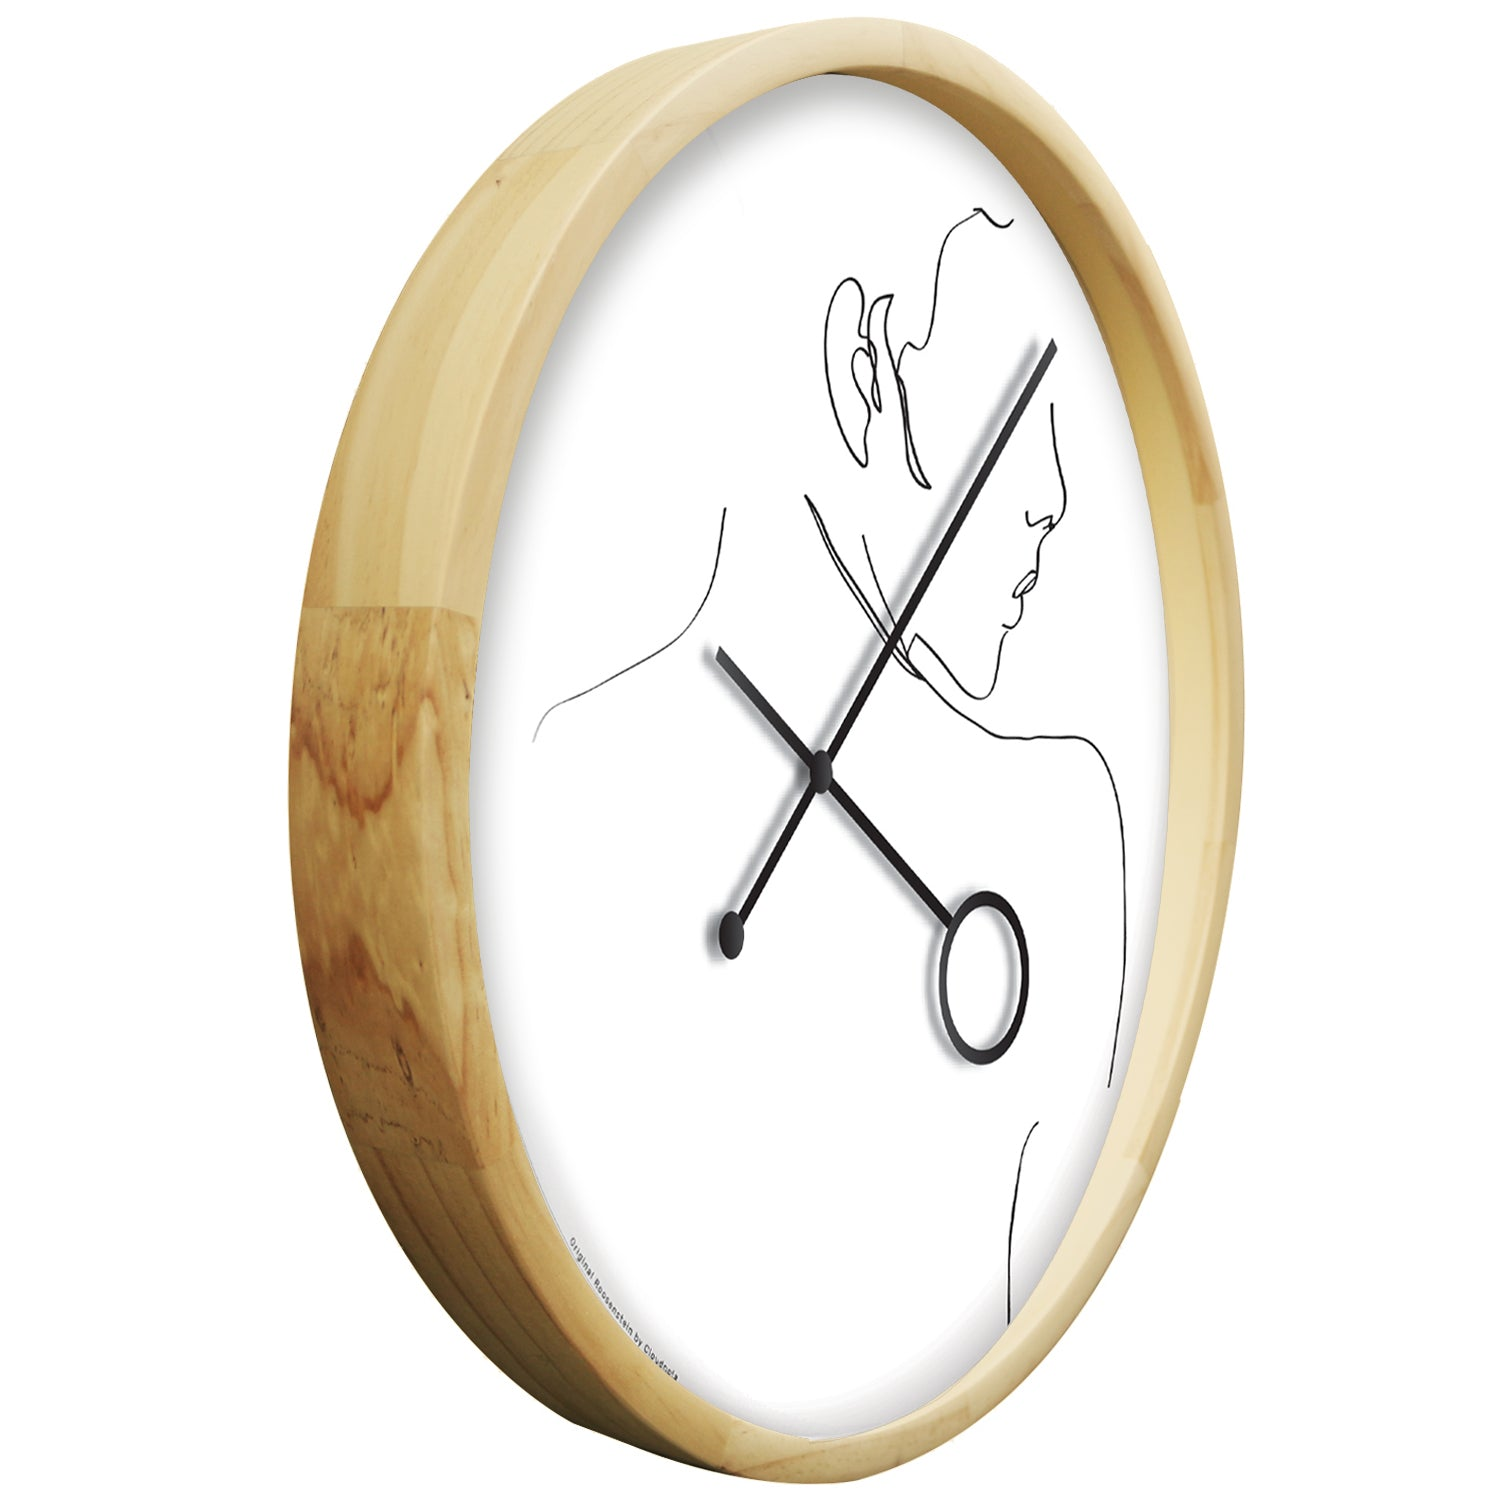 Line Art Flirt Wall Clock - EUROPE Exclusive